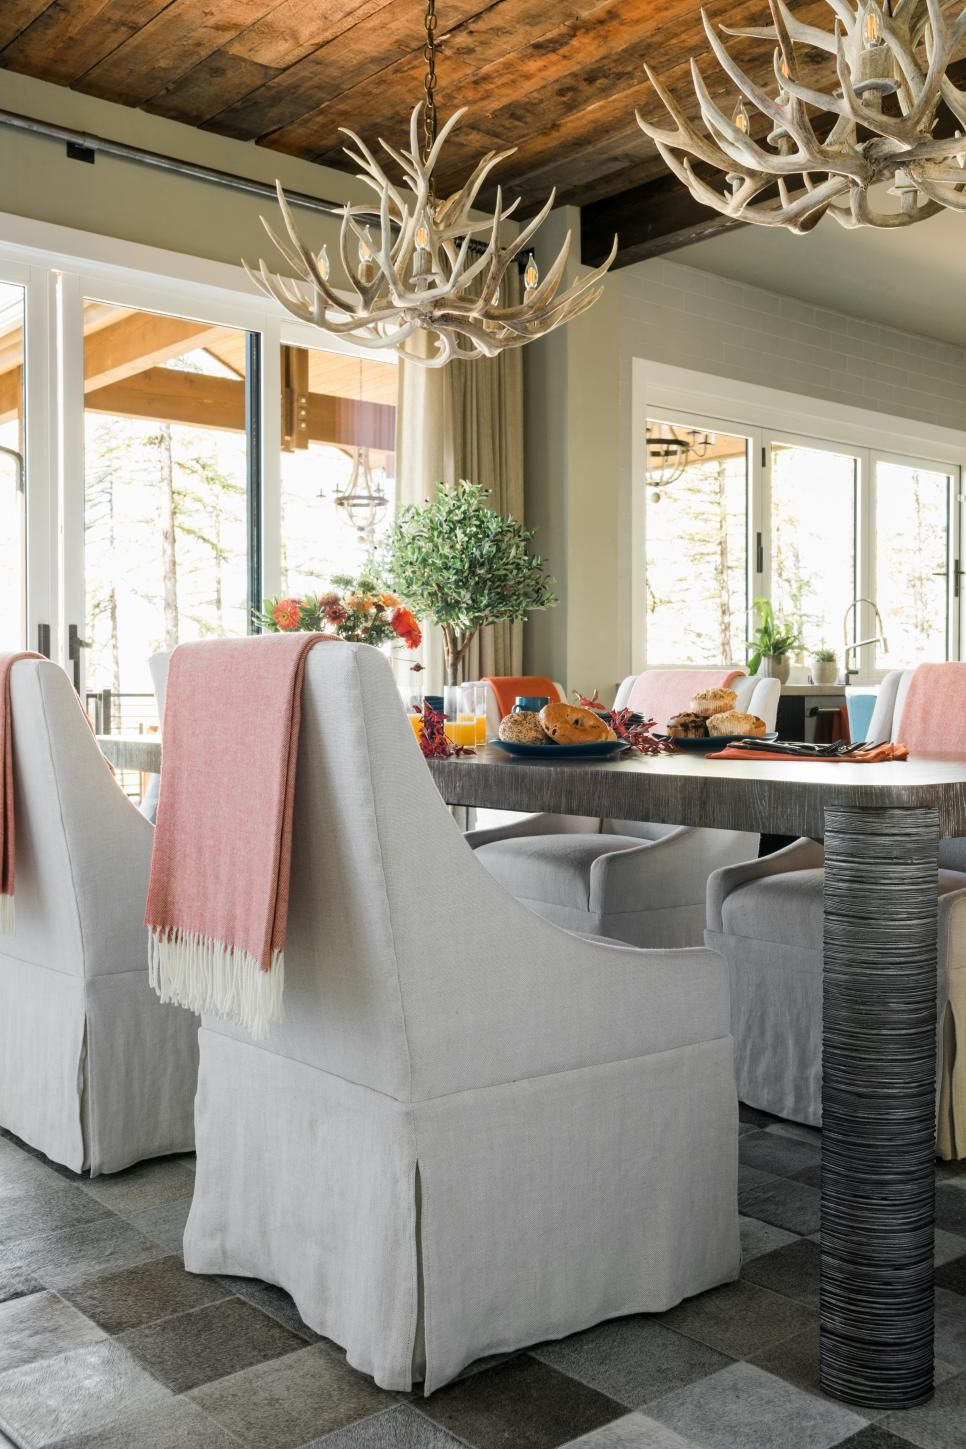 Modern Mountain Holidays At Hgtv Dream Home 2019: HGTV Dream Home 2019: Dining Room Pictures